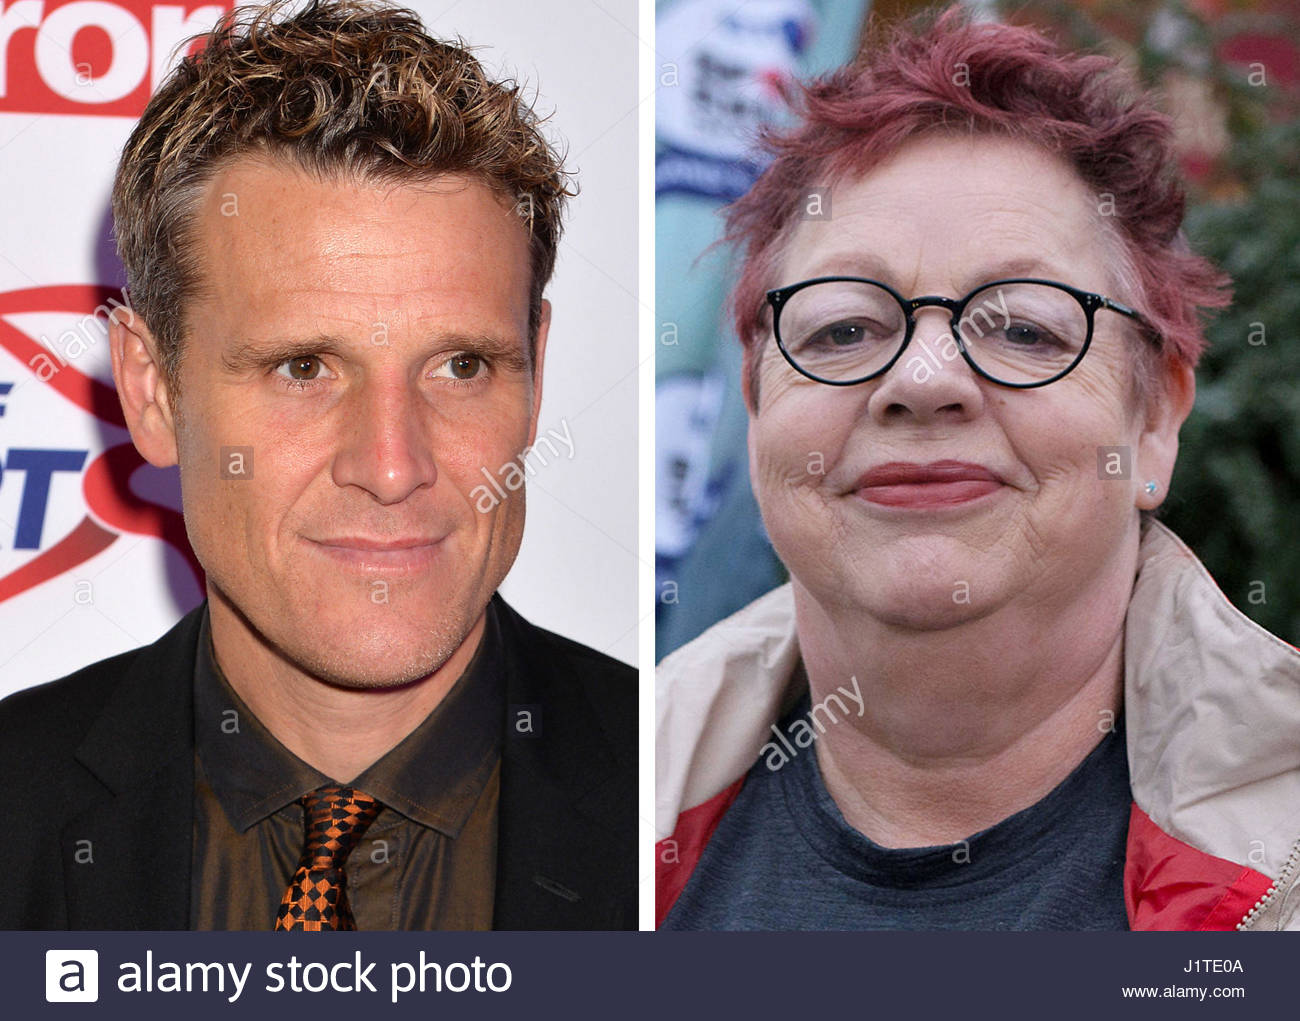 EMBARGOED TO 0001 MONDAY APRIL 24 Undated file photos of James Cracknell and Jo Brand who are joining a host of - Stock Image